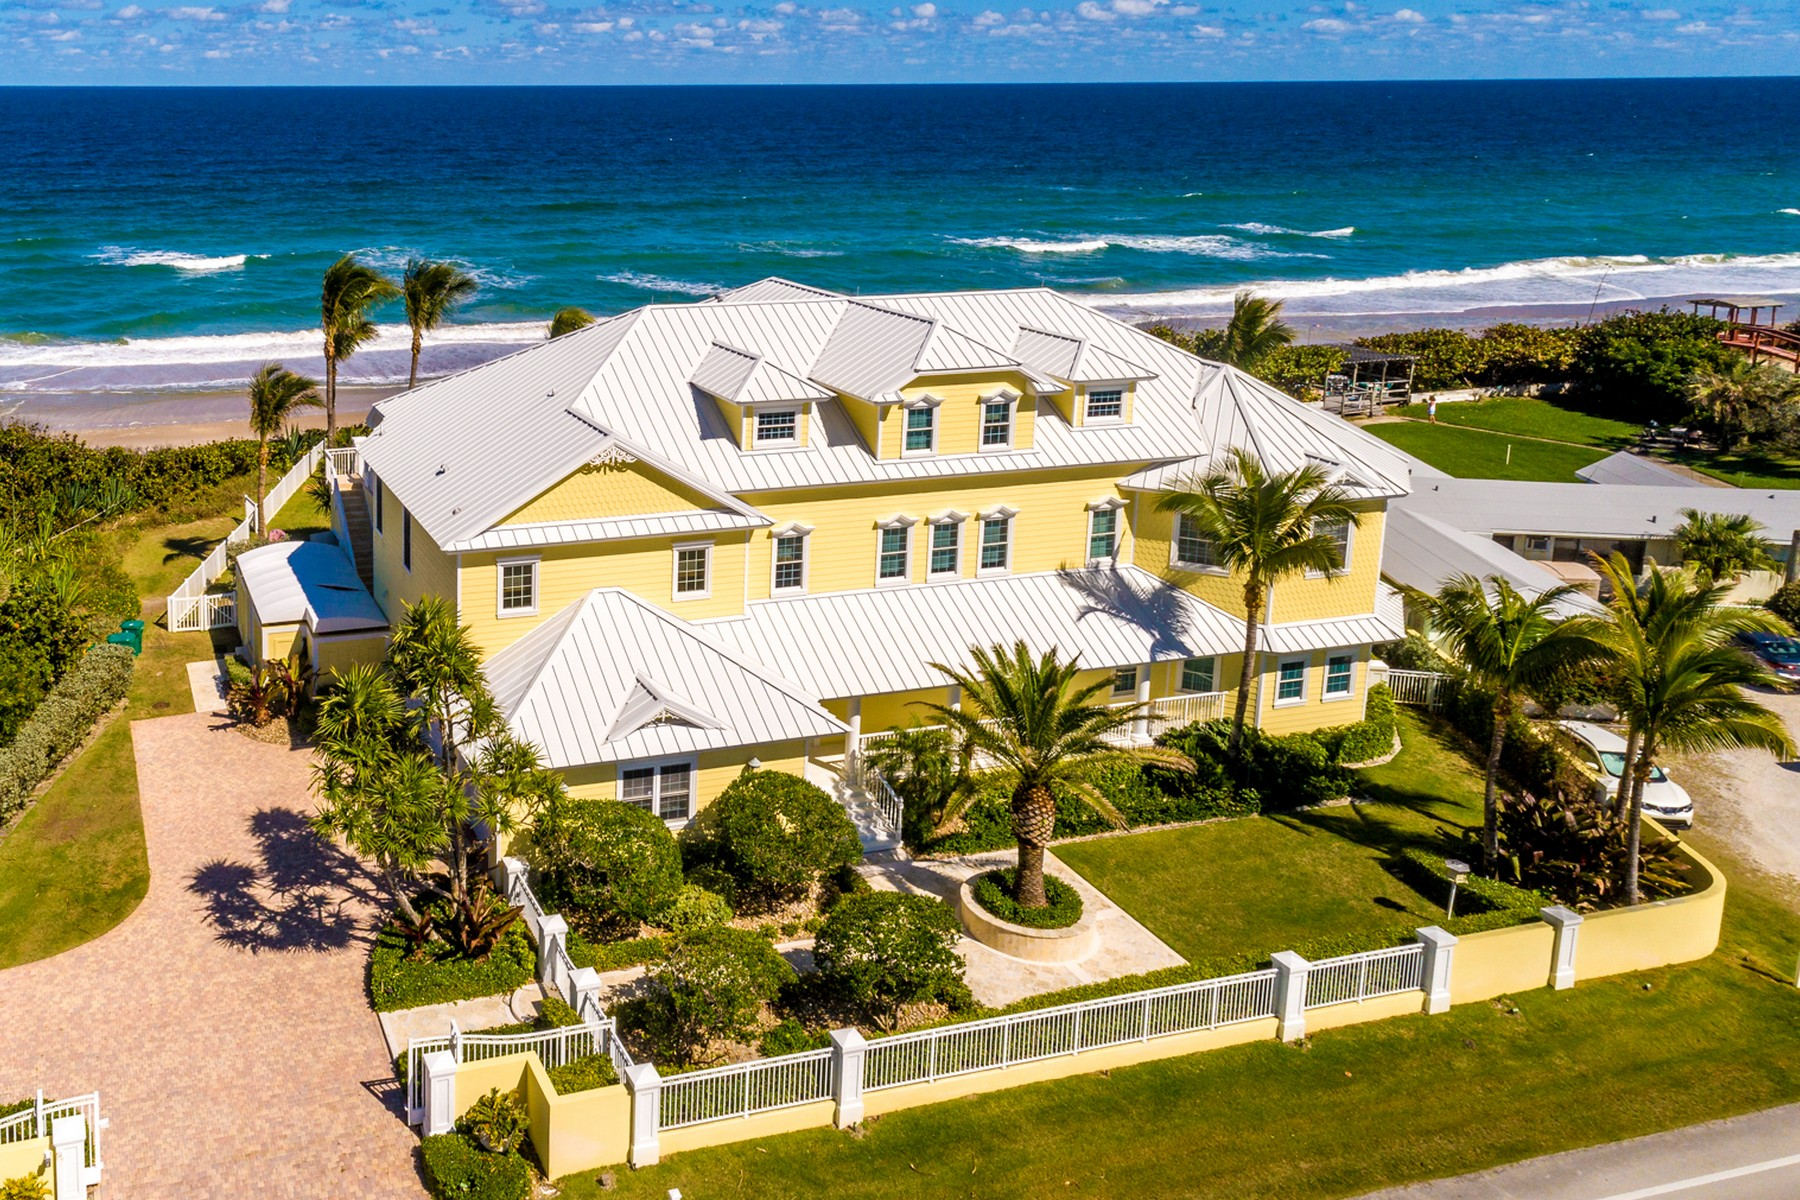 Property för Försäljning vid Gorgeous Tropically Landscaped Home with Endless Ocean Vistas 5045 S Highway A1A Melbourne Beach, Florida 32951 Förenta staterna